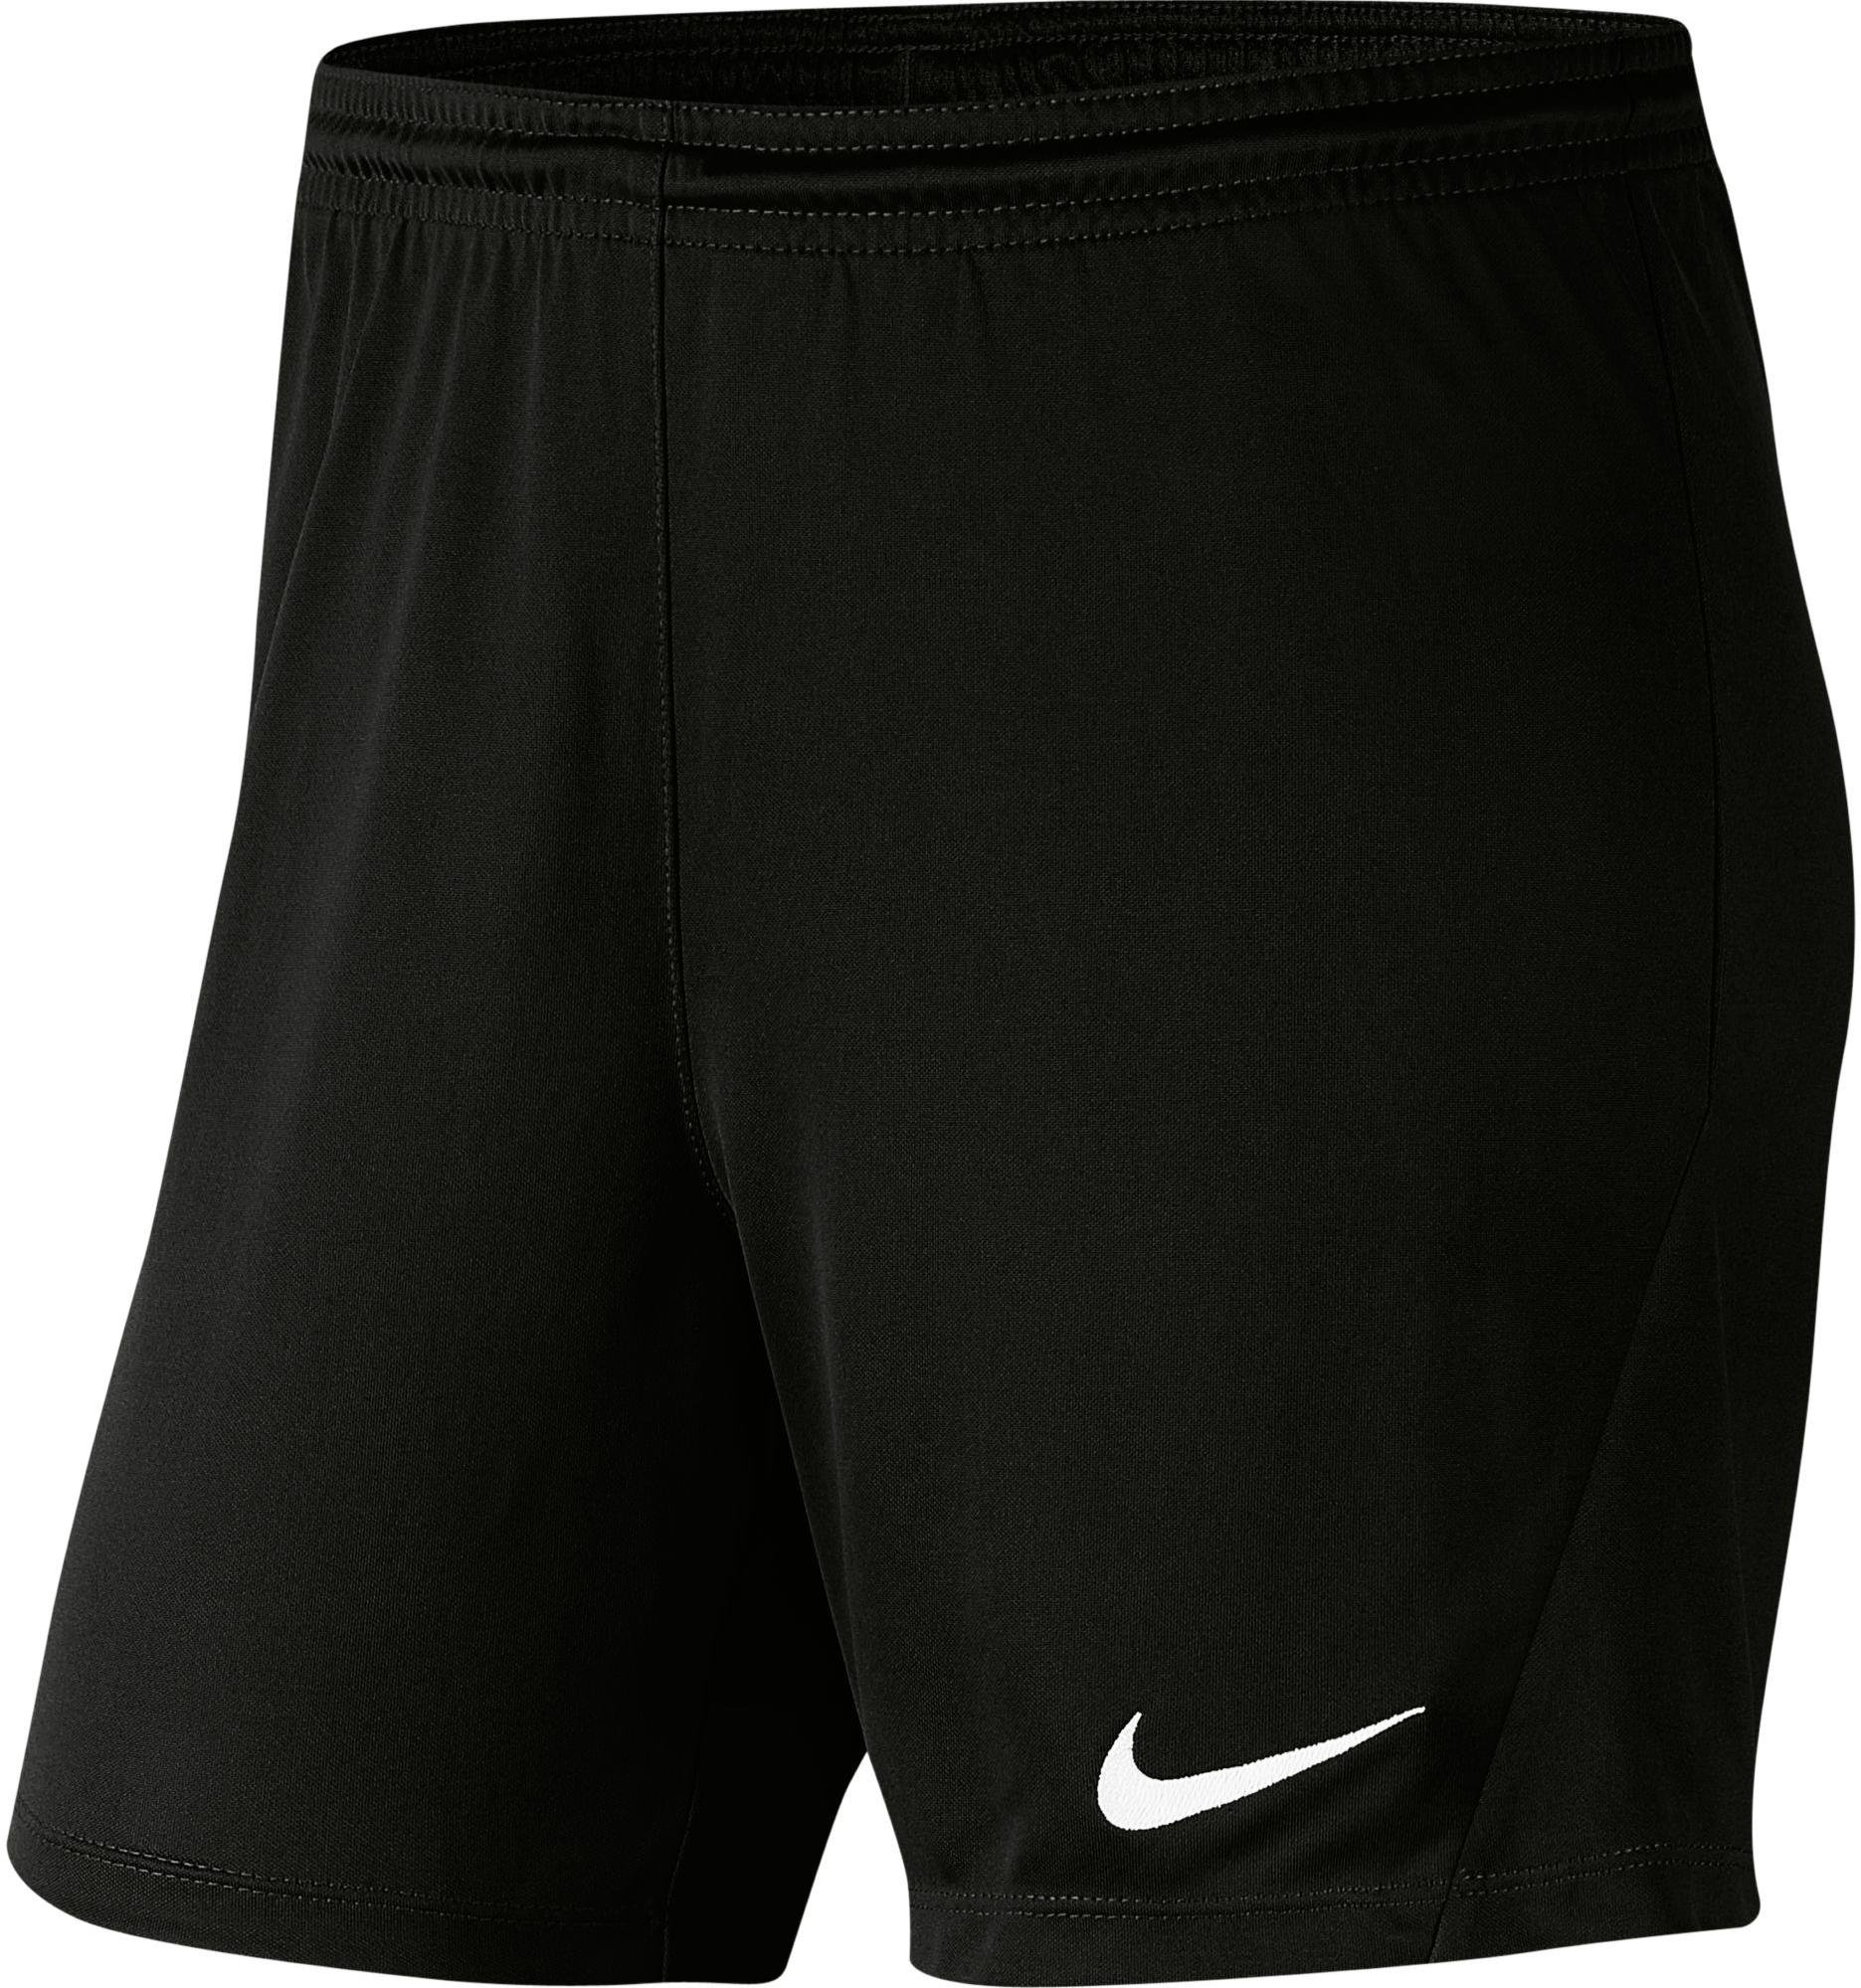 Pantalons courts Nike W NK DRY PARK III SHORT NB K